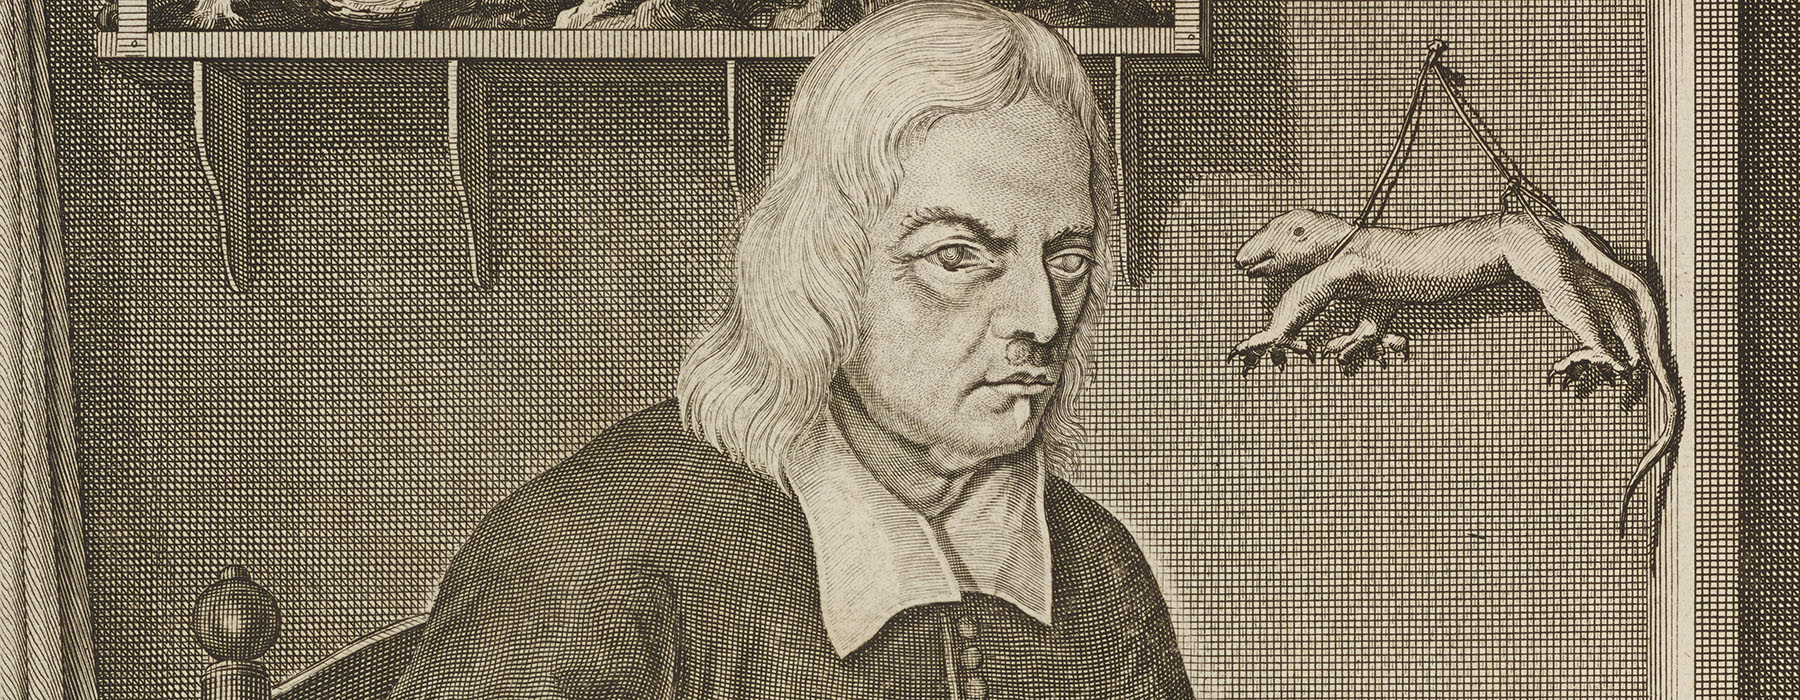 Illustration of a botanist show the glaucoma in his eyes. A skinned animal hangs on the wall behind him